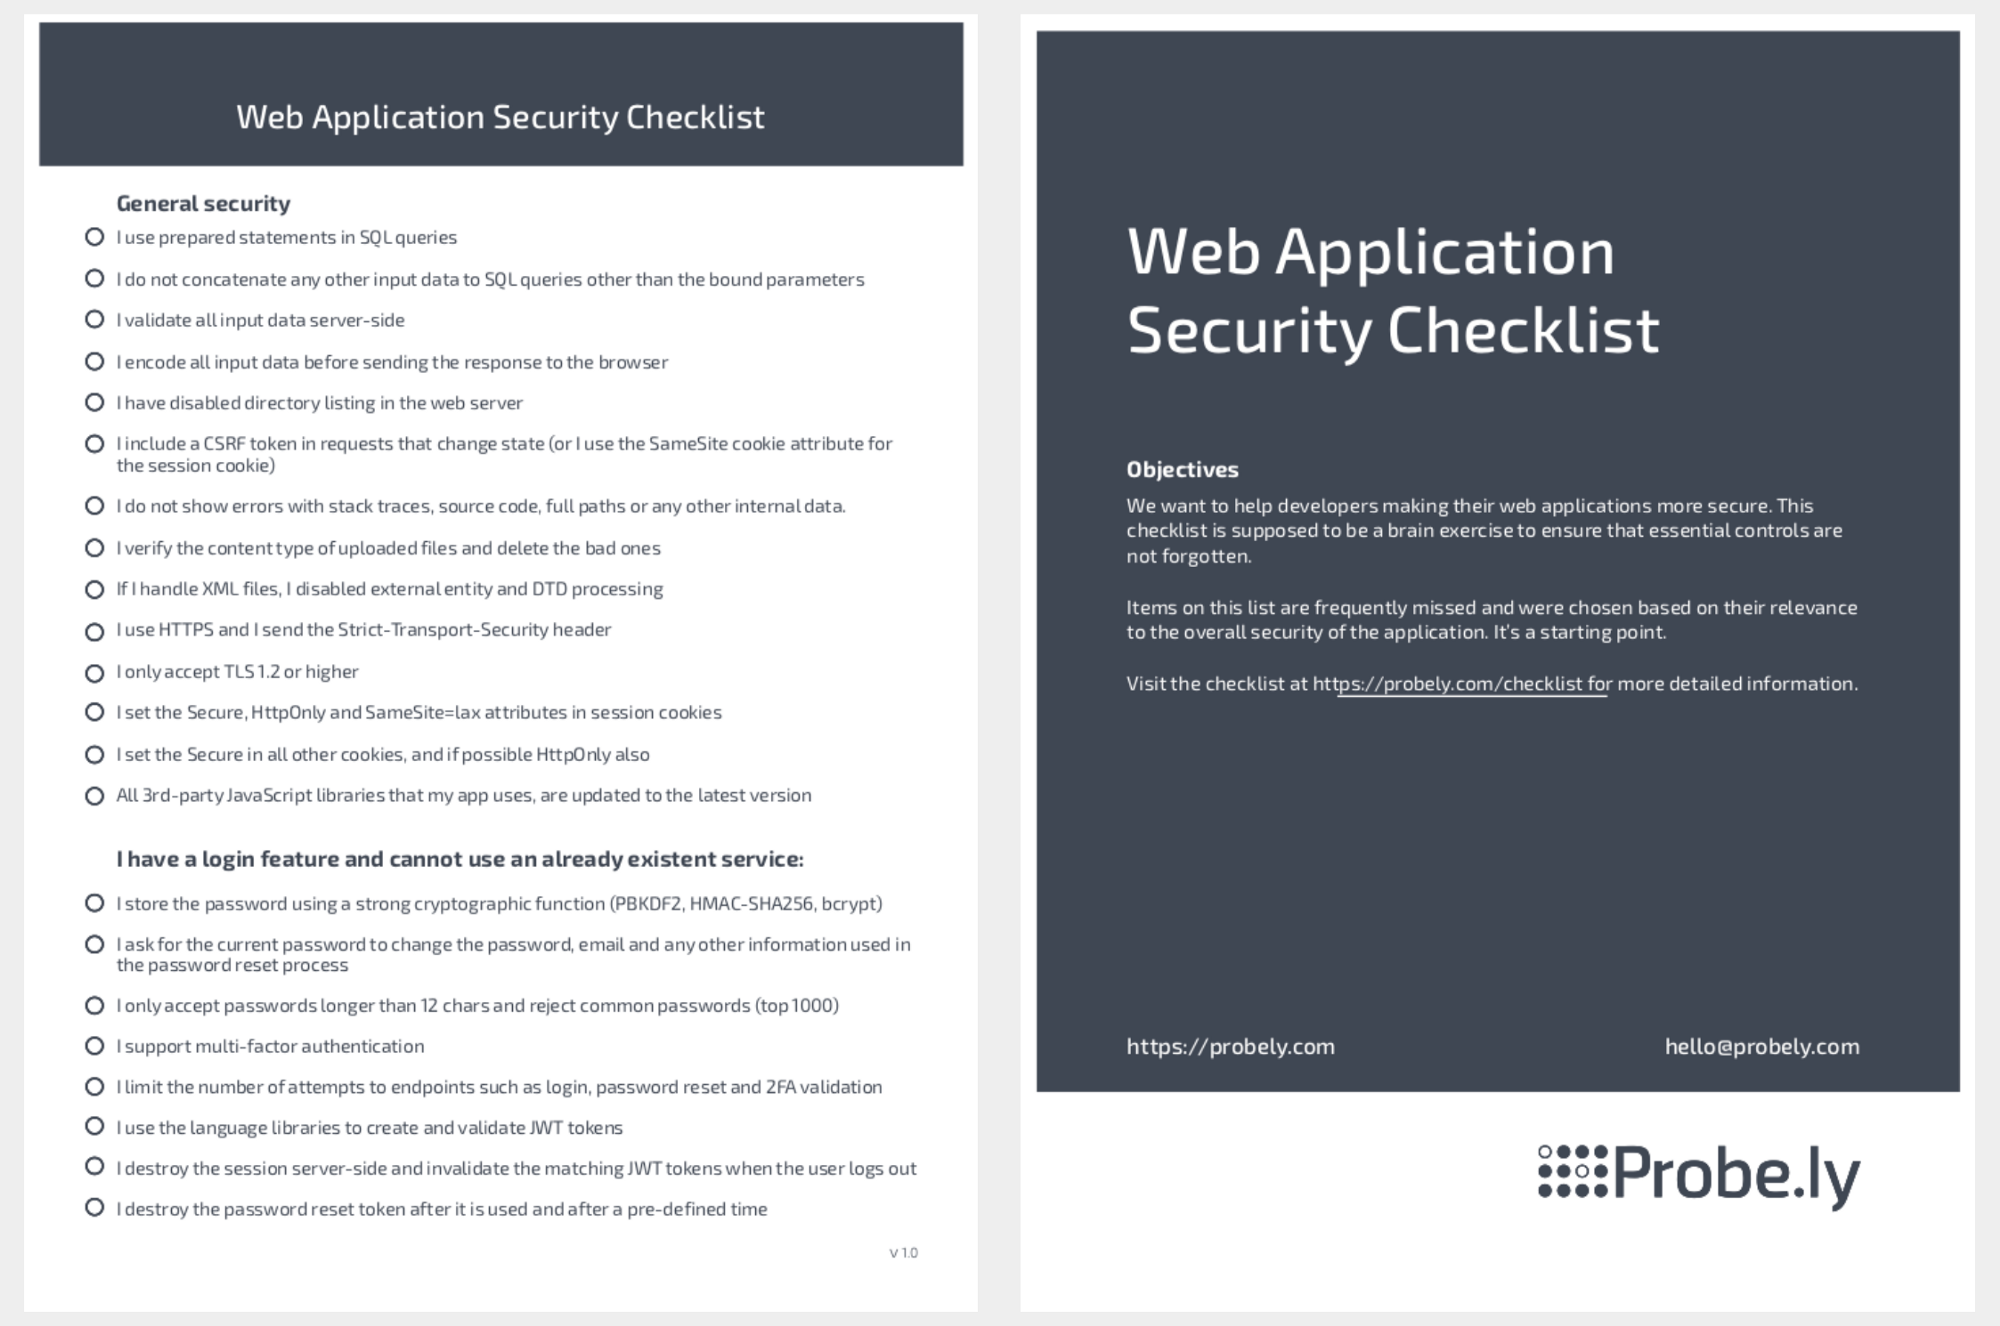 Web Application Security Checklist - Probely